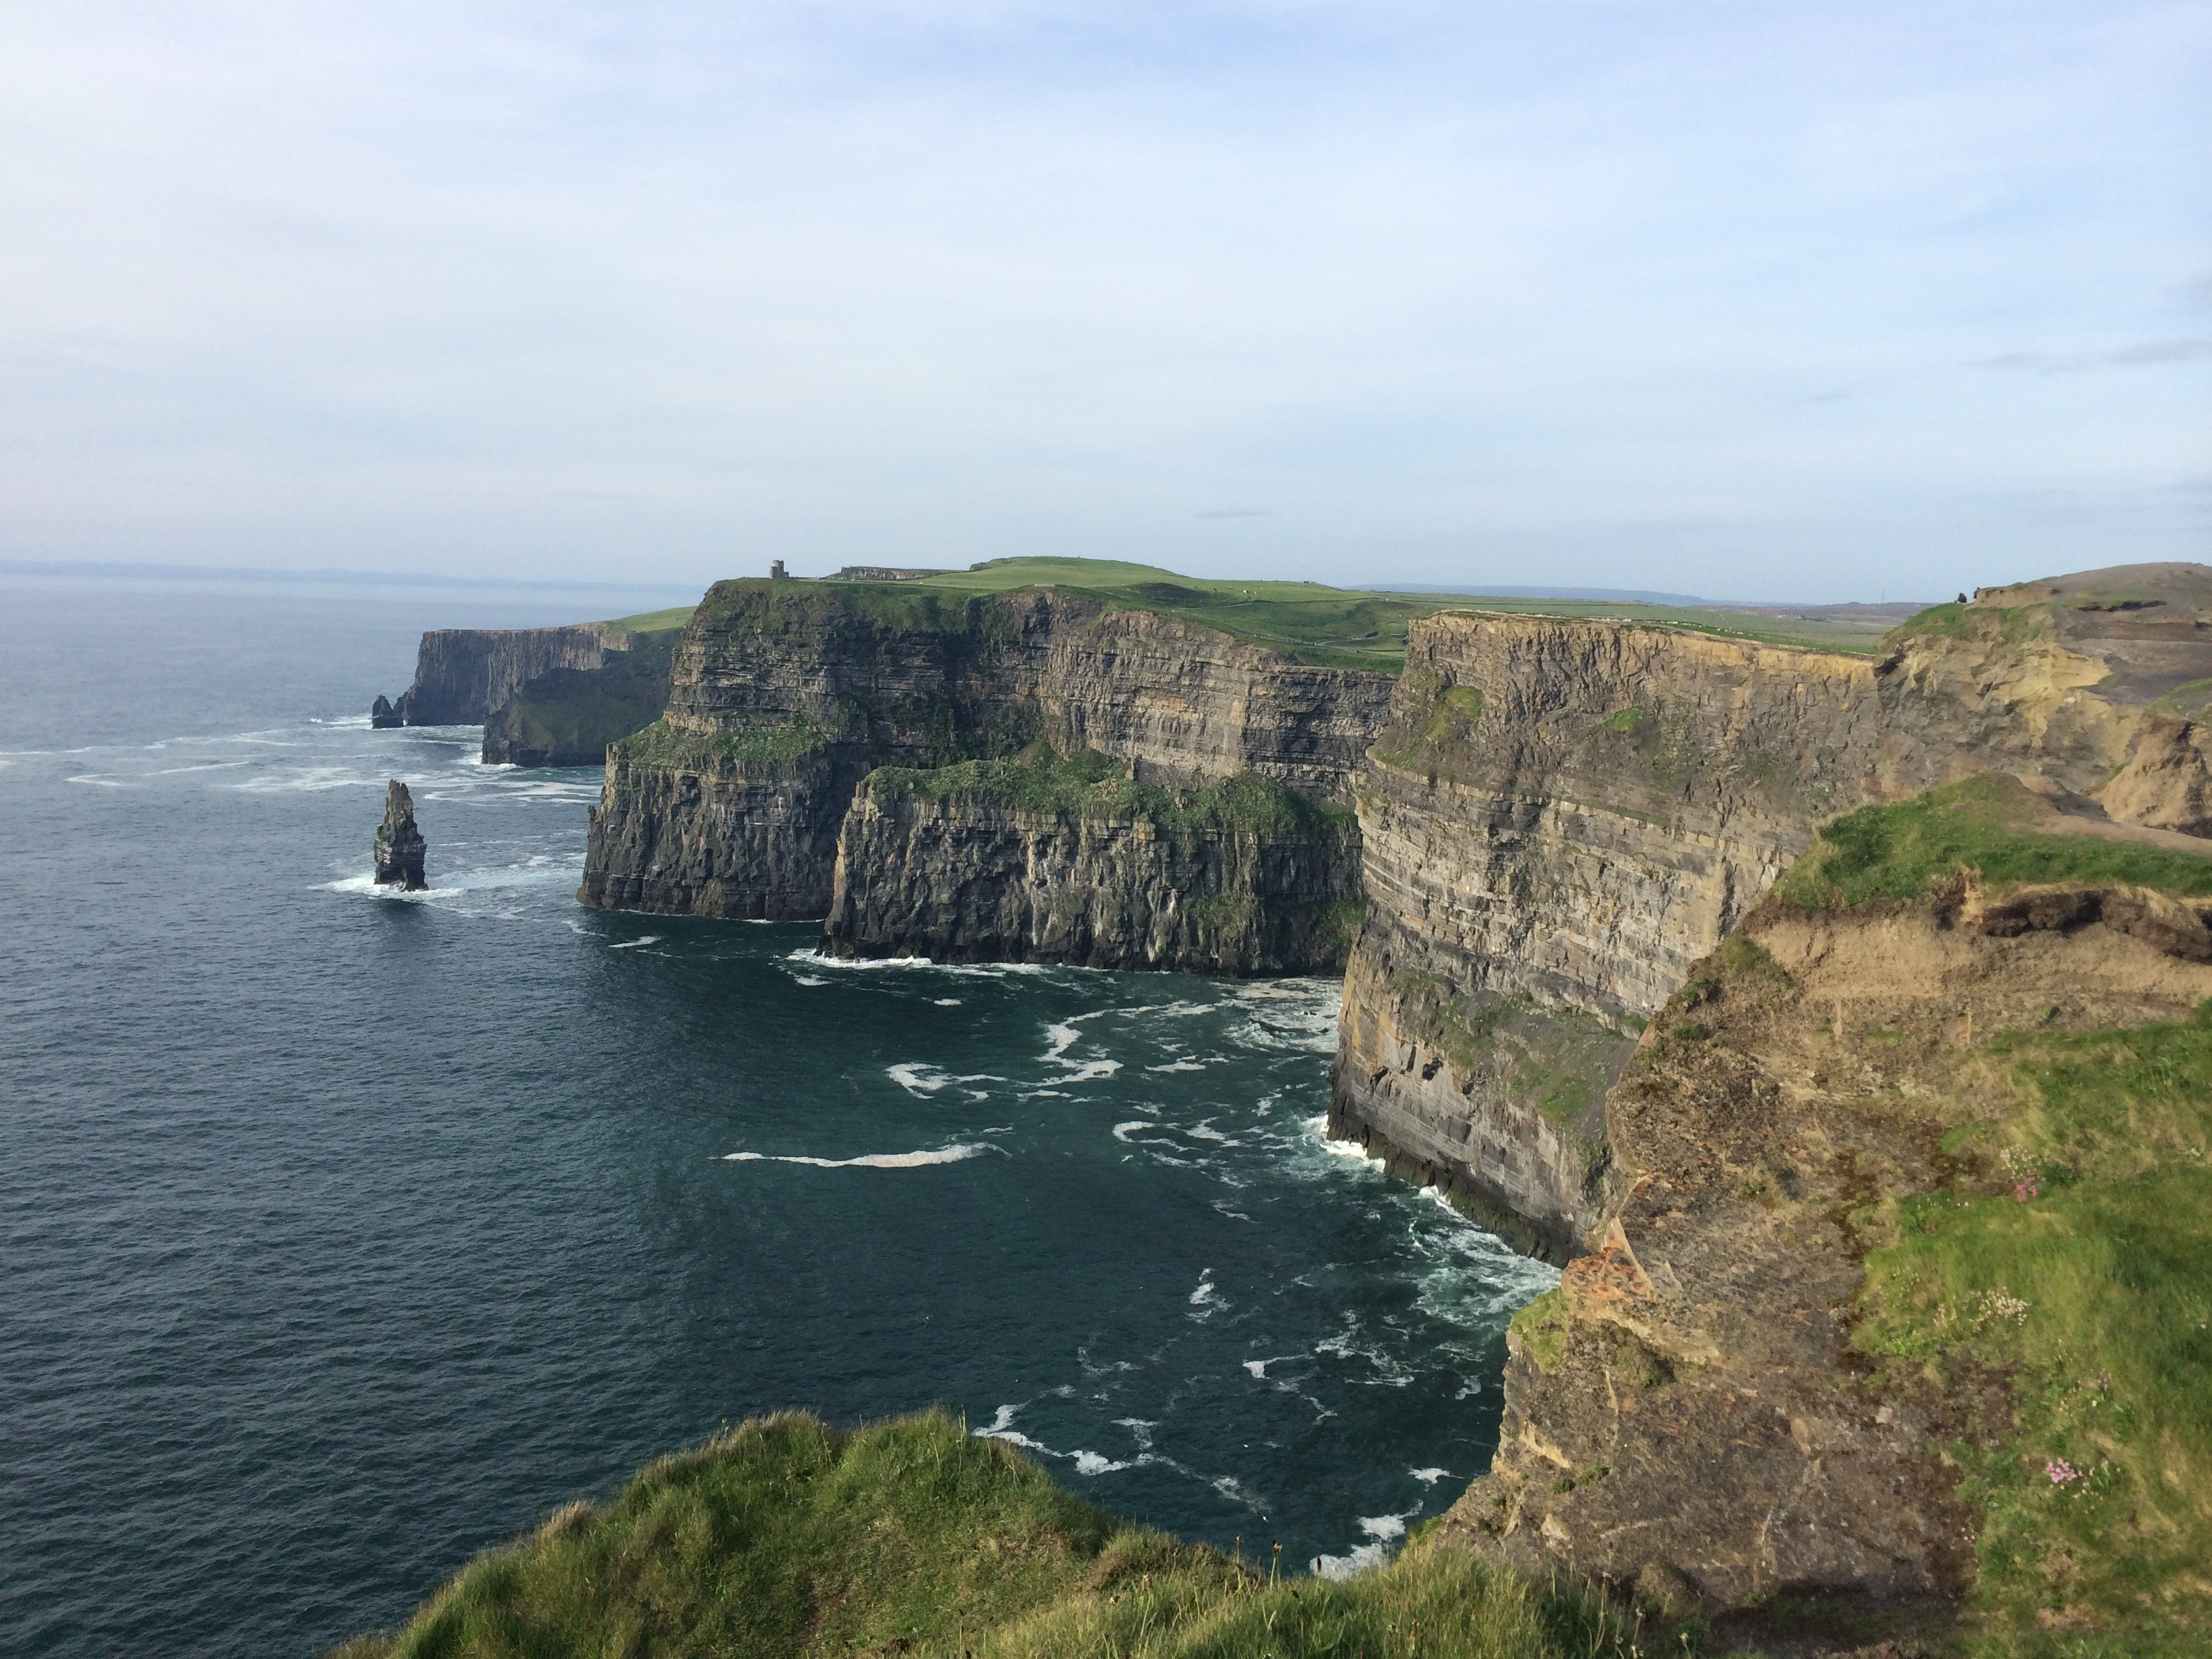 Forget The Gym - Cliffs of Moher Running Retreat - Forget The Gym on